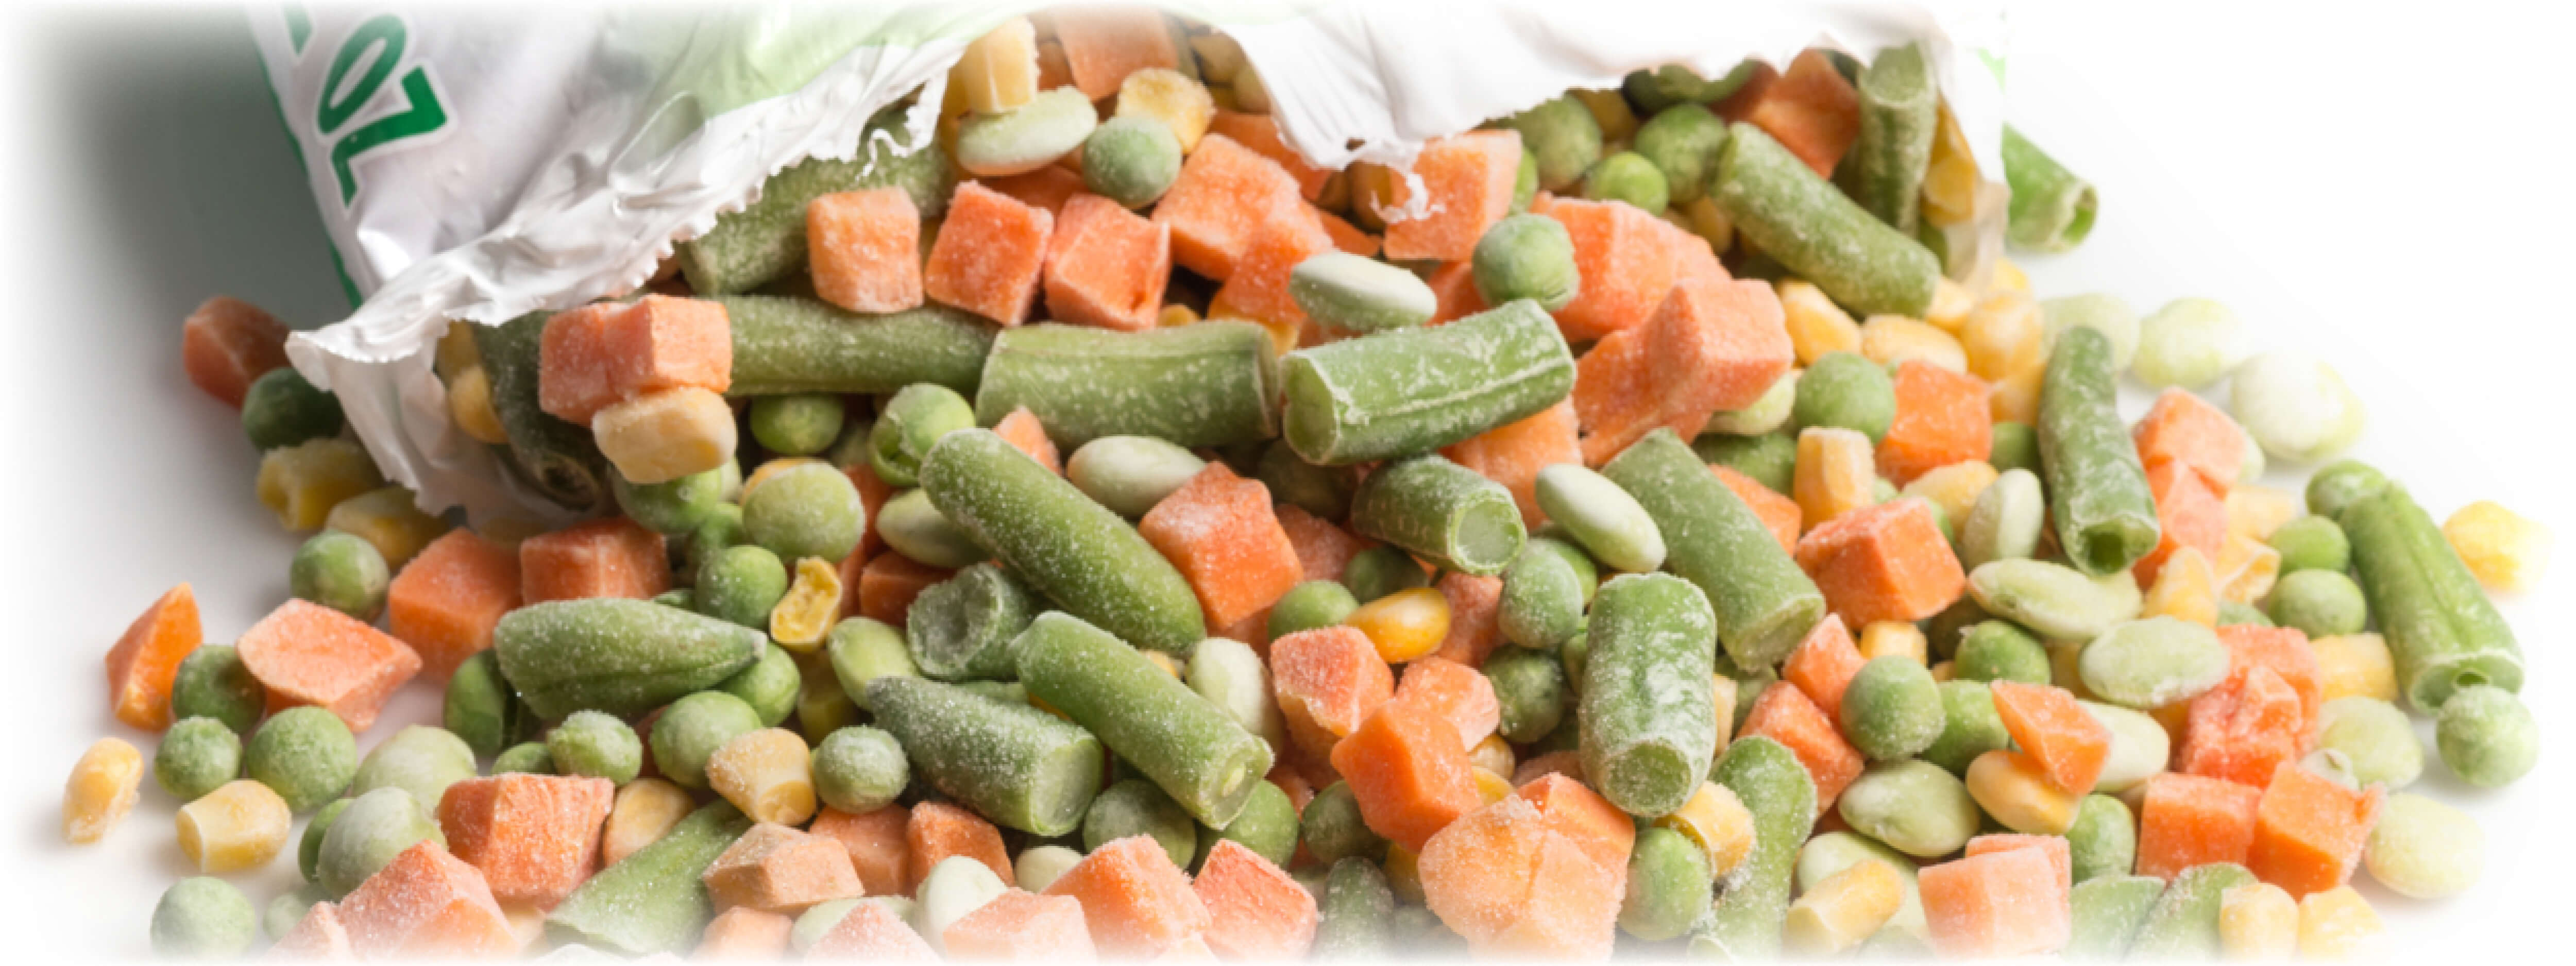 Frozen Food Packaging | Kendall Packaging Corporation